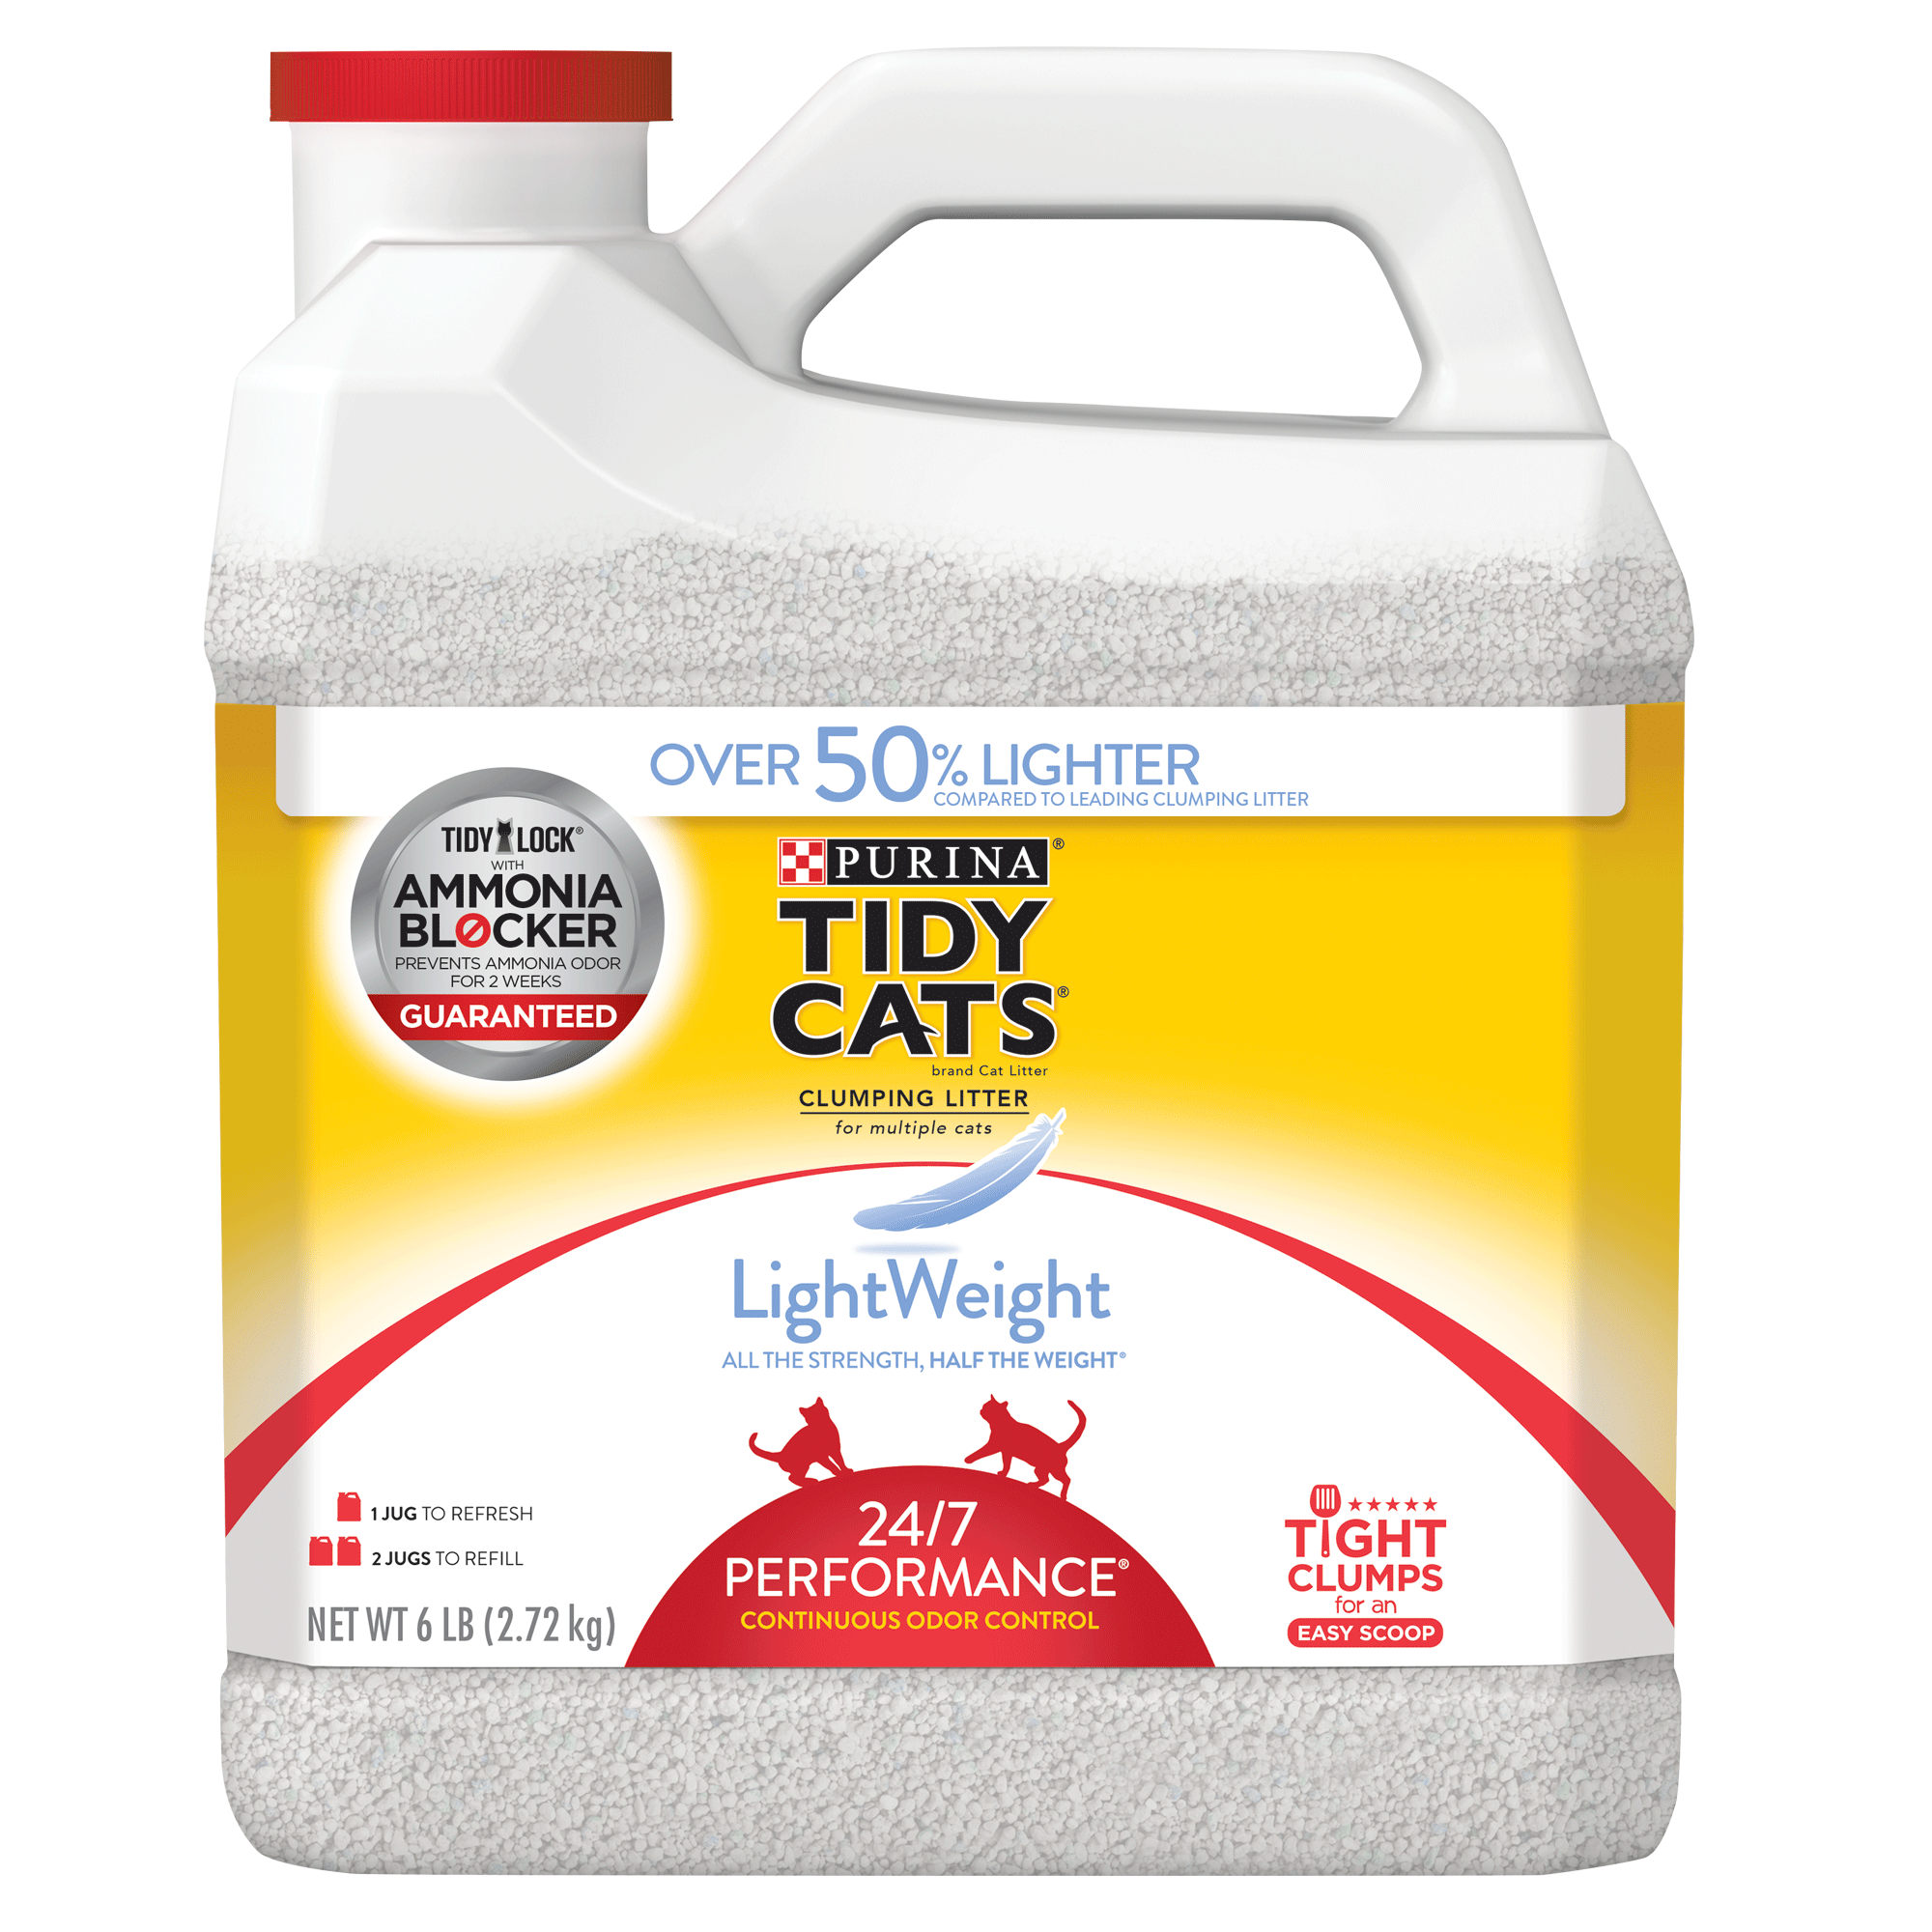 Purina Tidy Cats LightWeight 24/7 Performance for Multiple Cats Clumping Cat Litter, 6-lb Jug